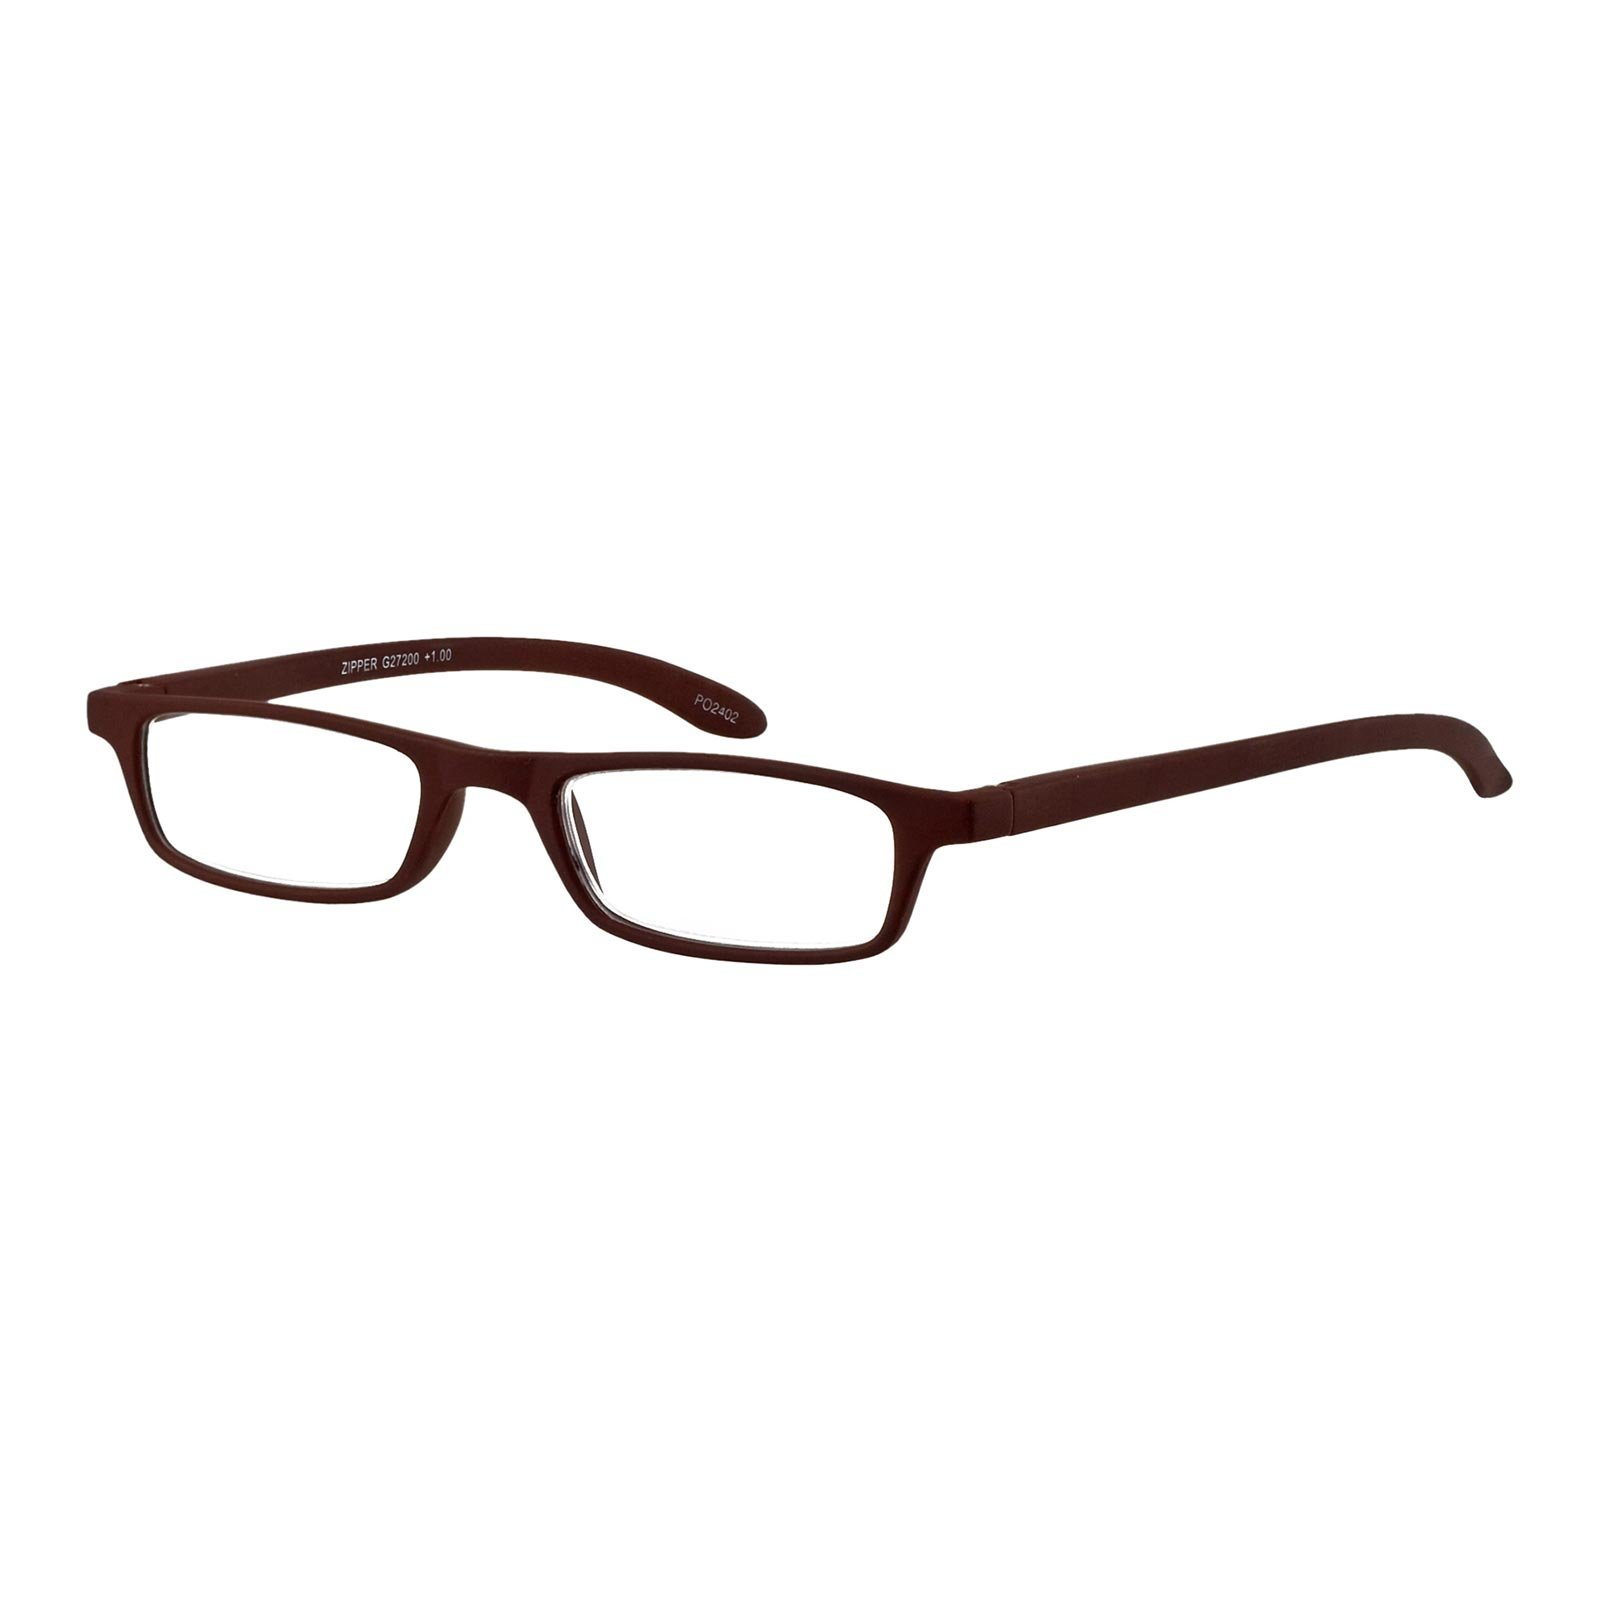 You Rectangular Reading Eyeglasses Brown Zipper